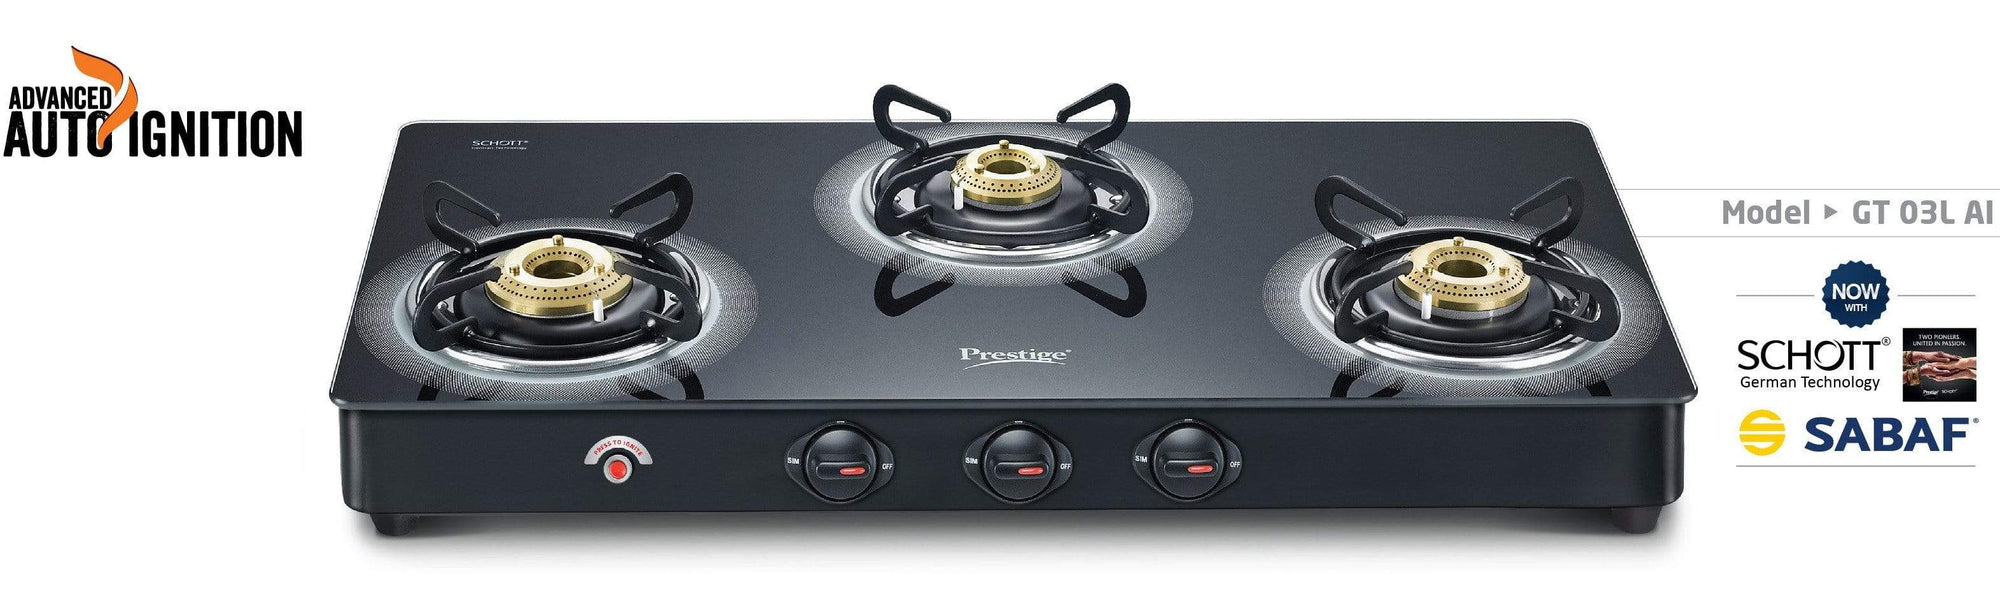 Prestige Royale Plus Schott Glass 3 Burner Gas Stove, Auto Ignition - KITCHEN MART